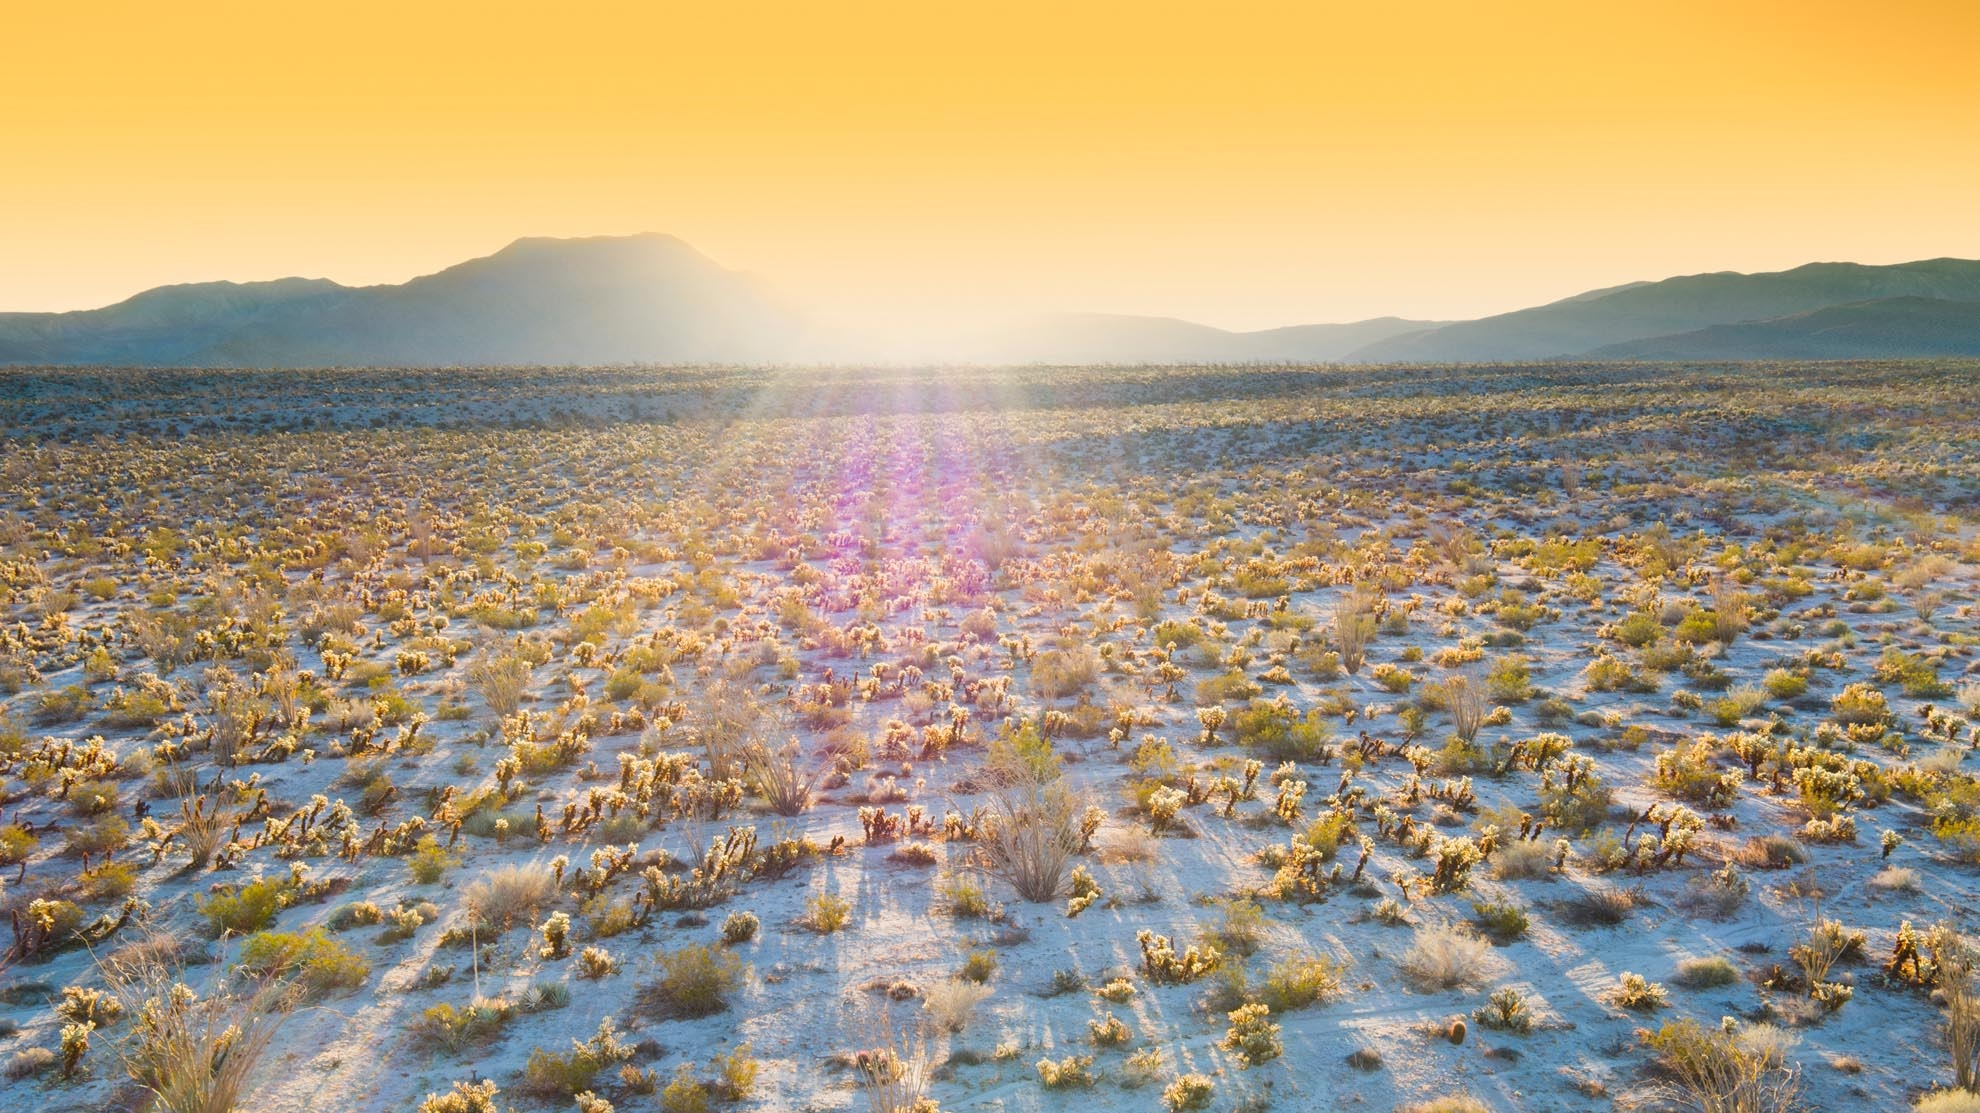 Drone Photograph of California Desert at sunrise